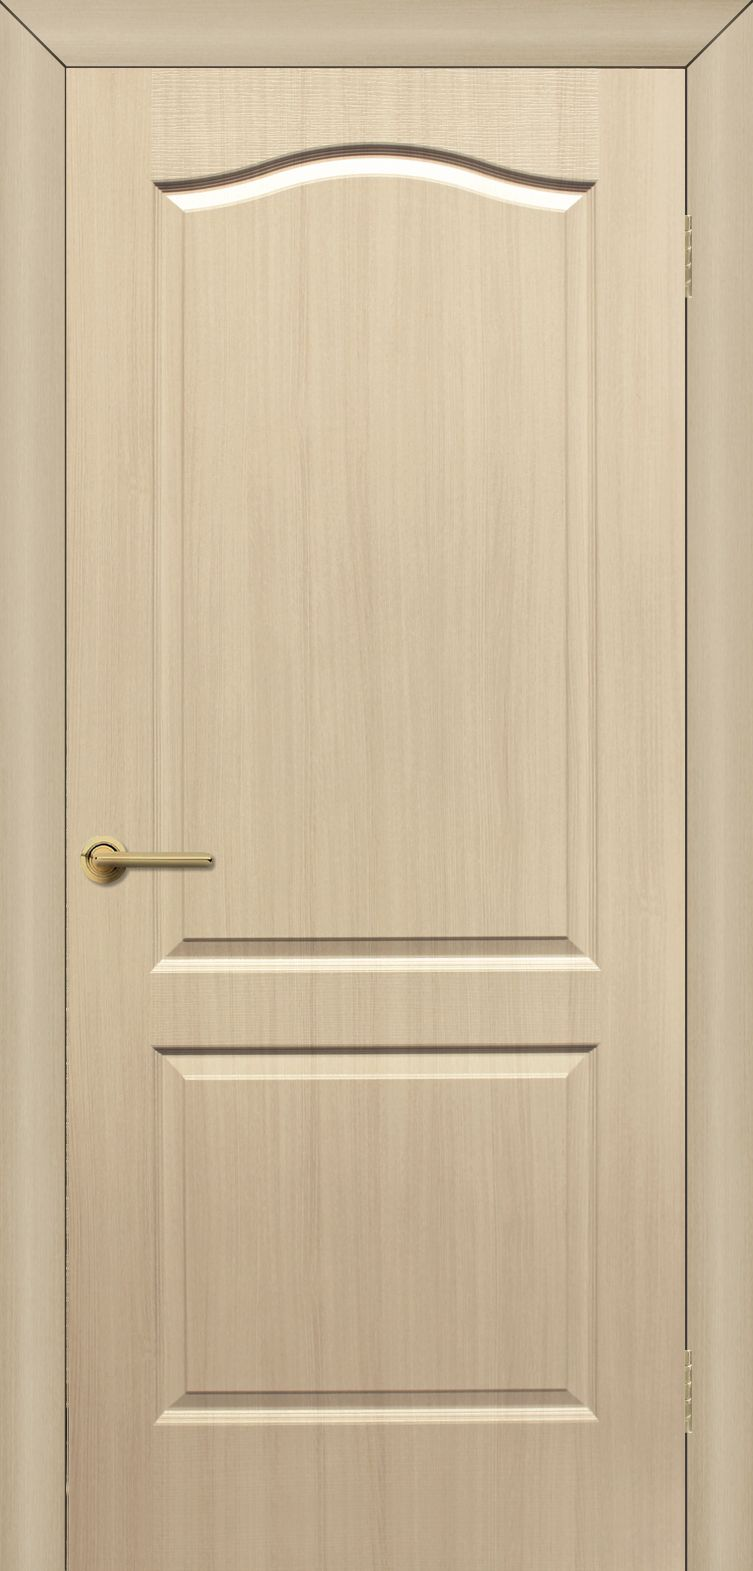 Beige masonite door for Doors and doors